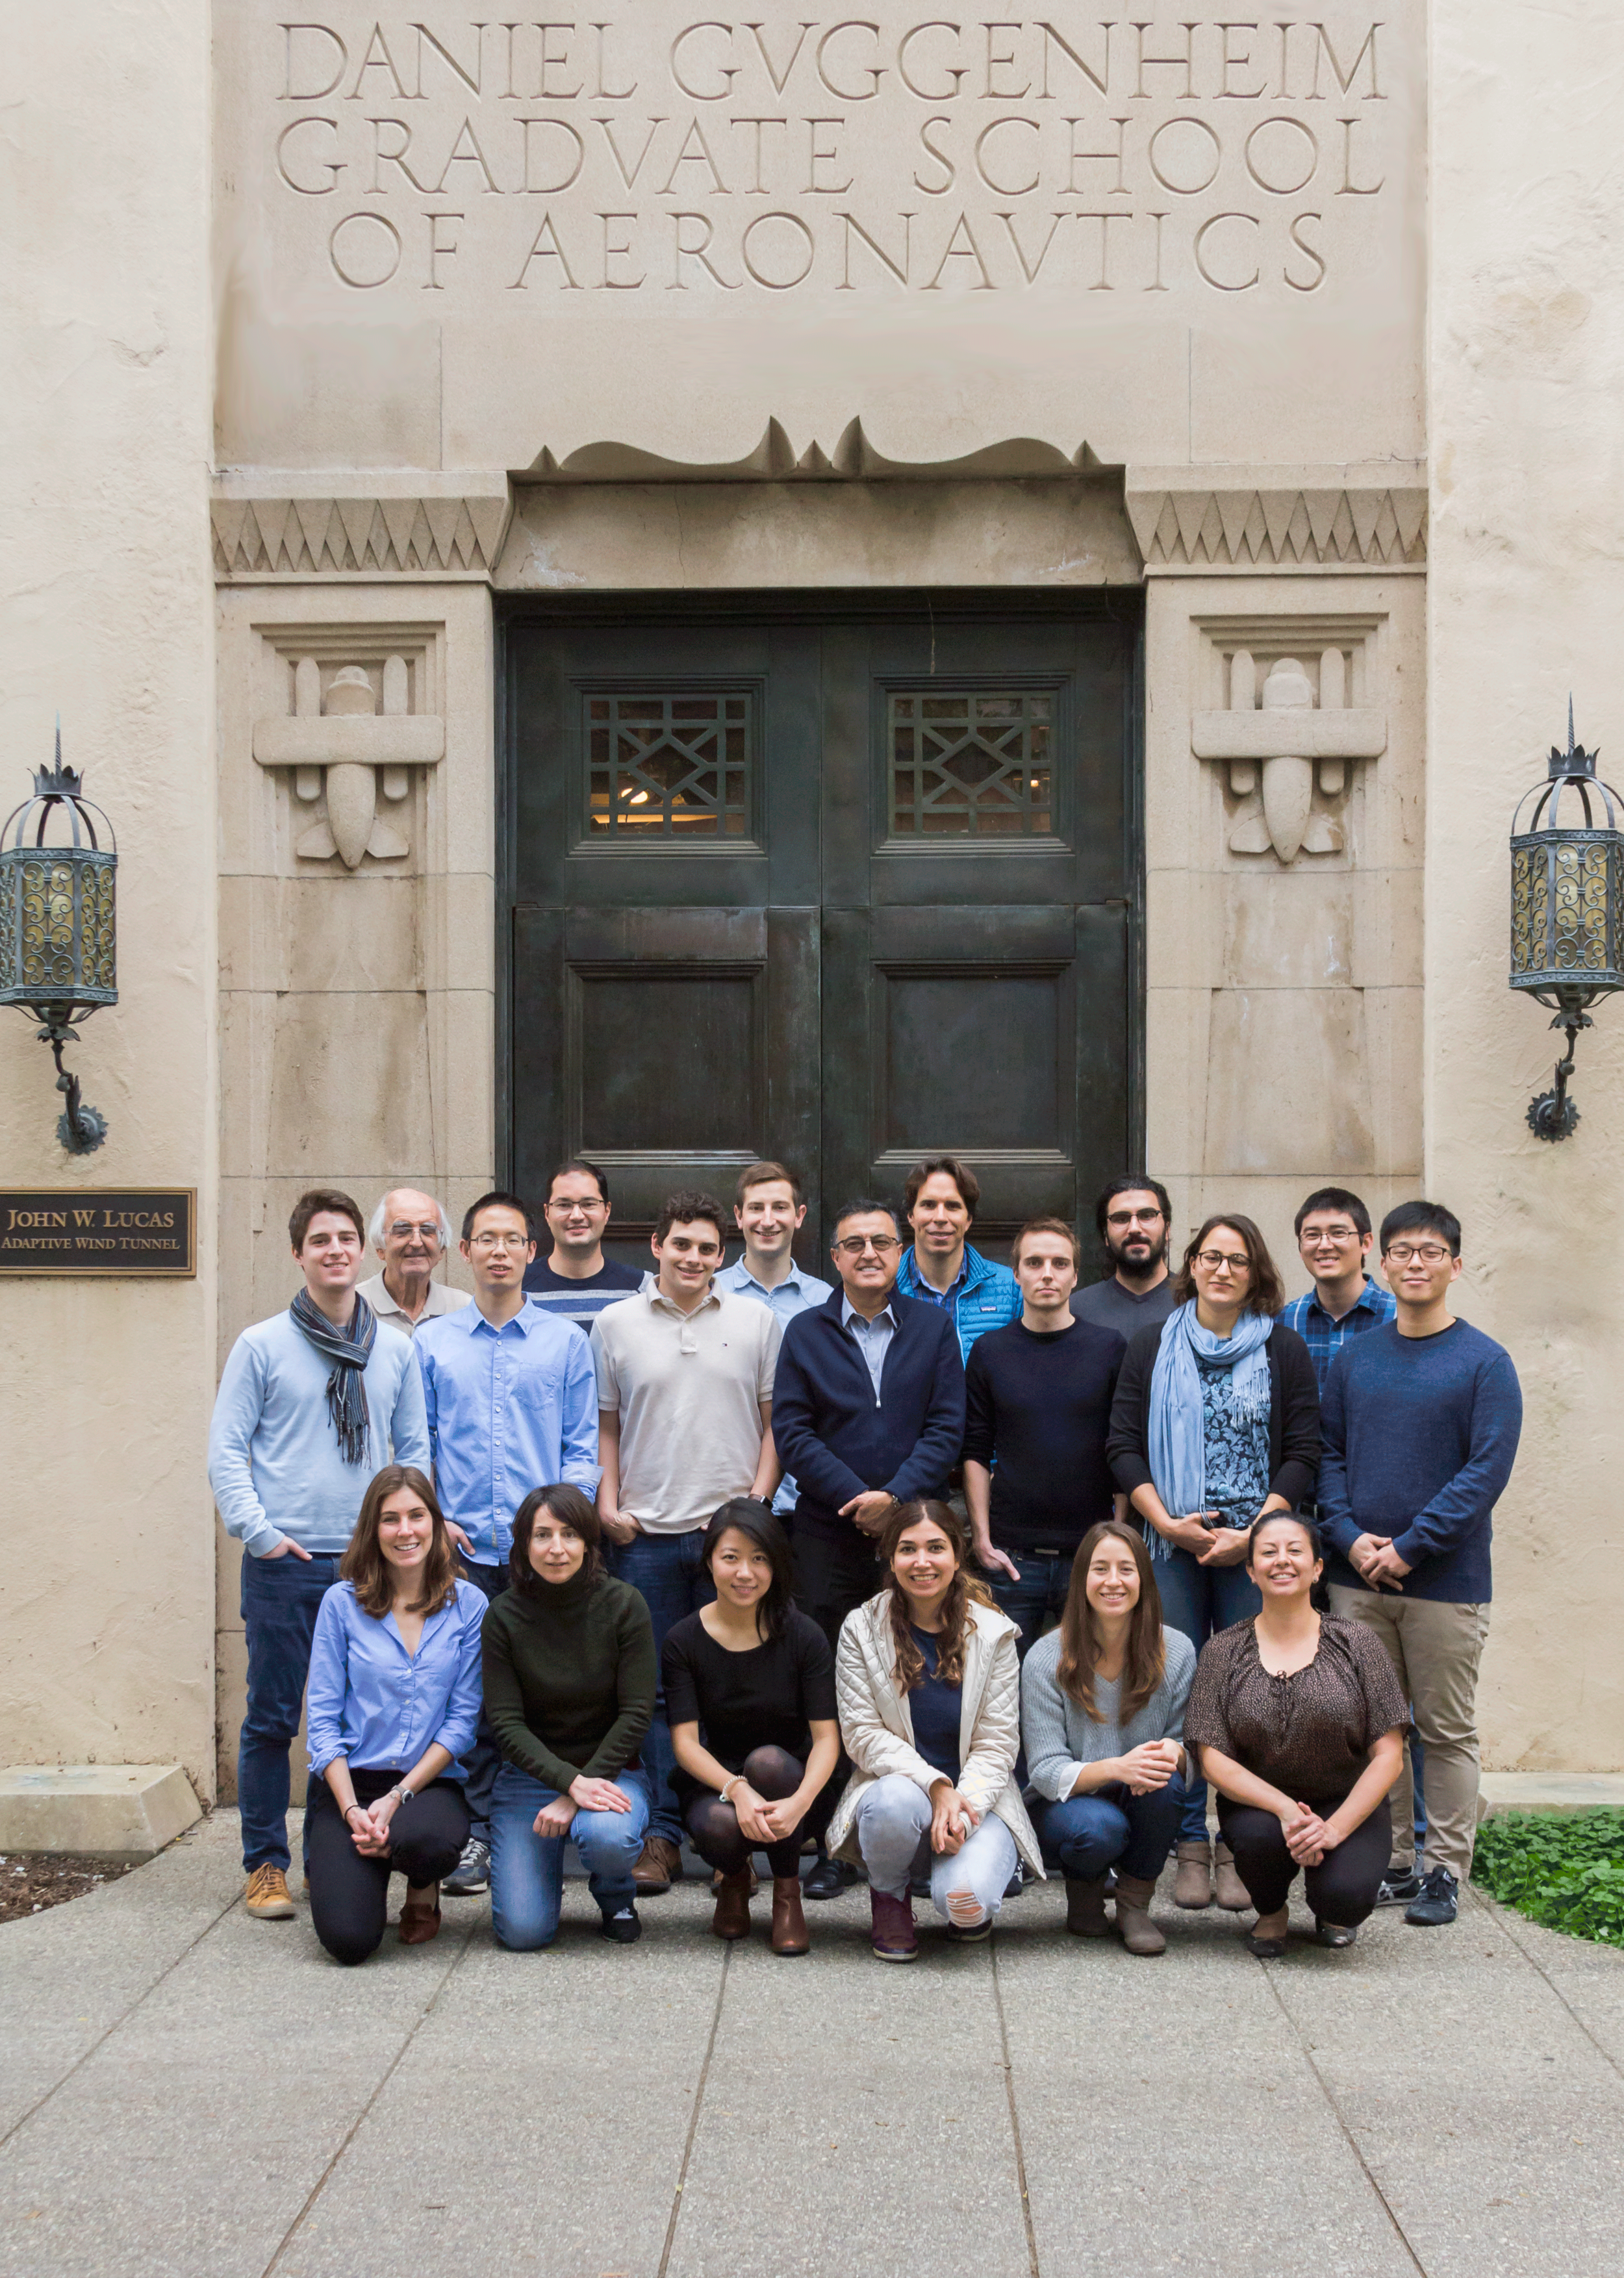 In front of the Guggenheim building for Aerospace Engineering at Caltech!  Going left to right. Front row: Stephanie, Isabelle, Jinglin, Azin, Cecilia, Martha. Middle row: Raimondo, Cong, Chris D., Professor Gharib, Damian, Morgane,Chris R. Back row: Masoud, Marcel, David B., Manu,Nathan.  Photo credit: Kali Dougherty from Kali Jeane Photography.